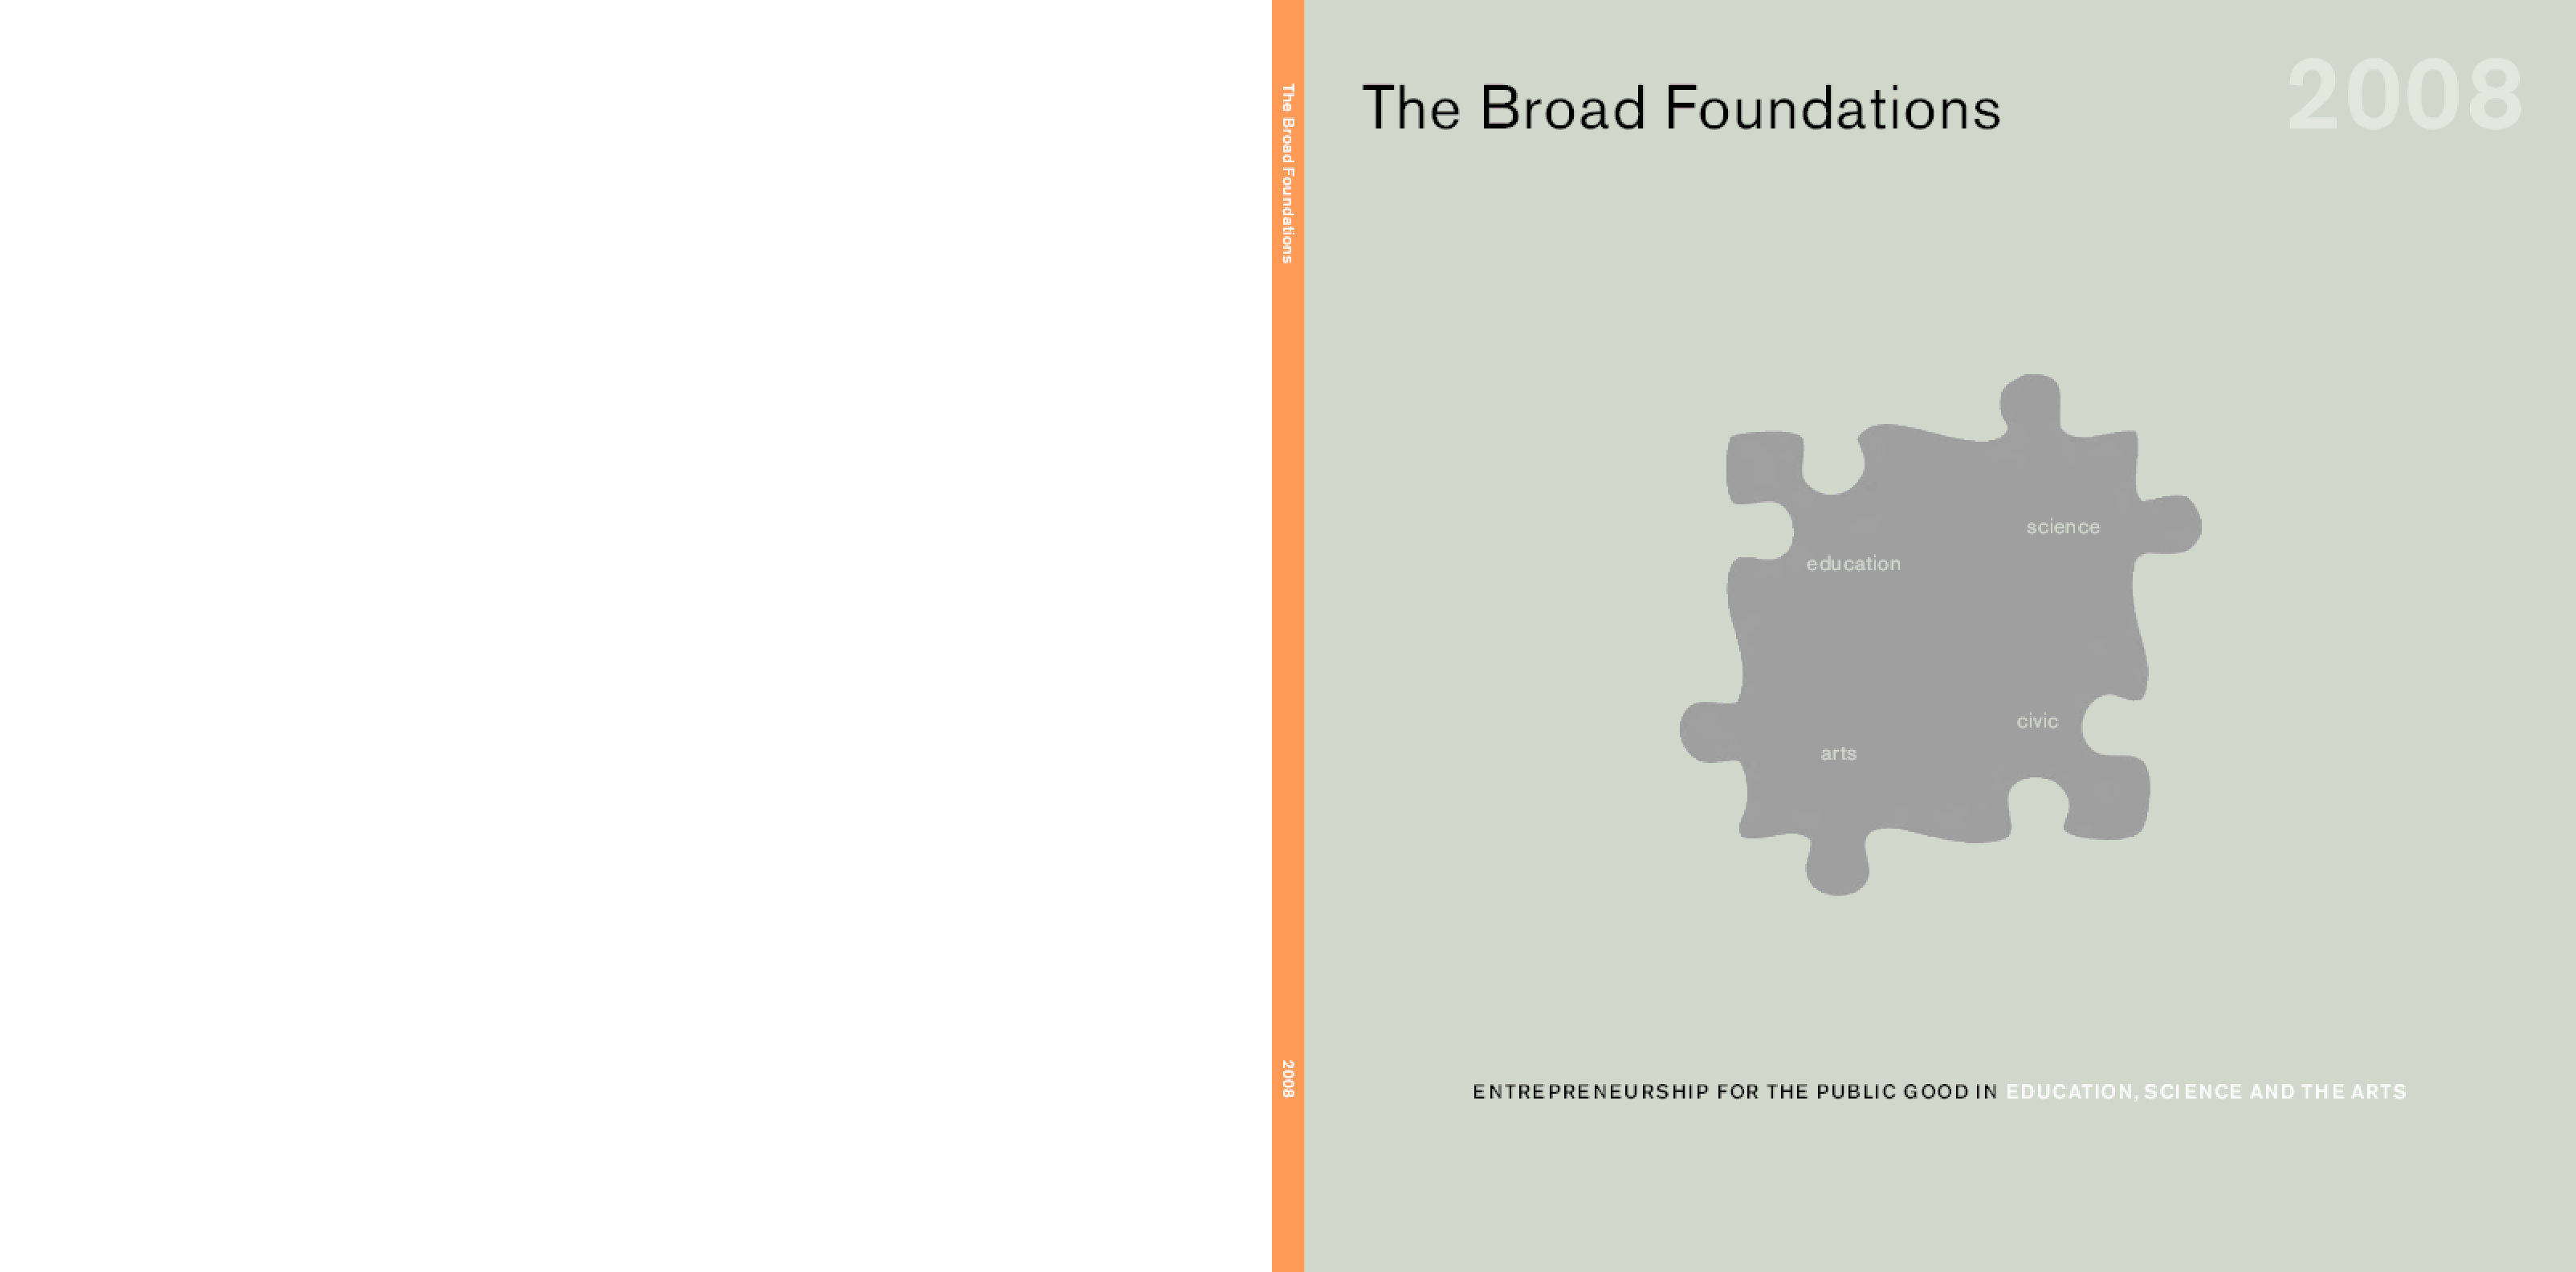 Eli and Edythe Broad Foundation; Broad Art Foundation - 2009/10 Annual Report